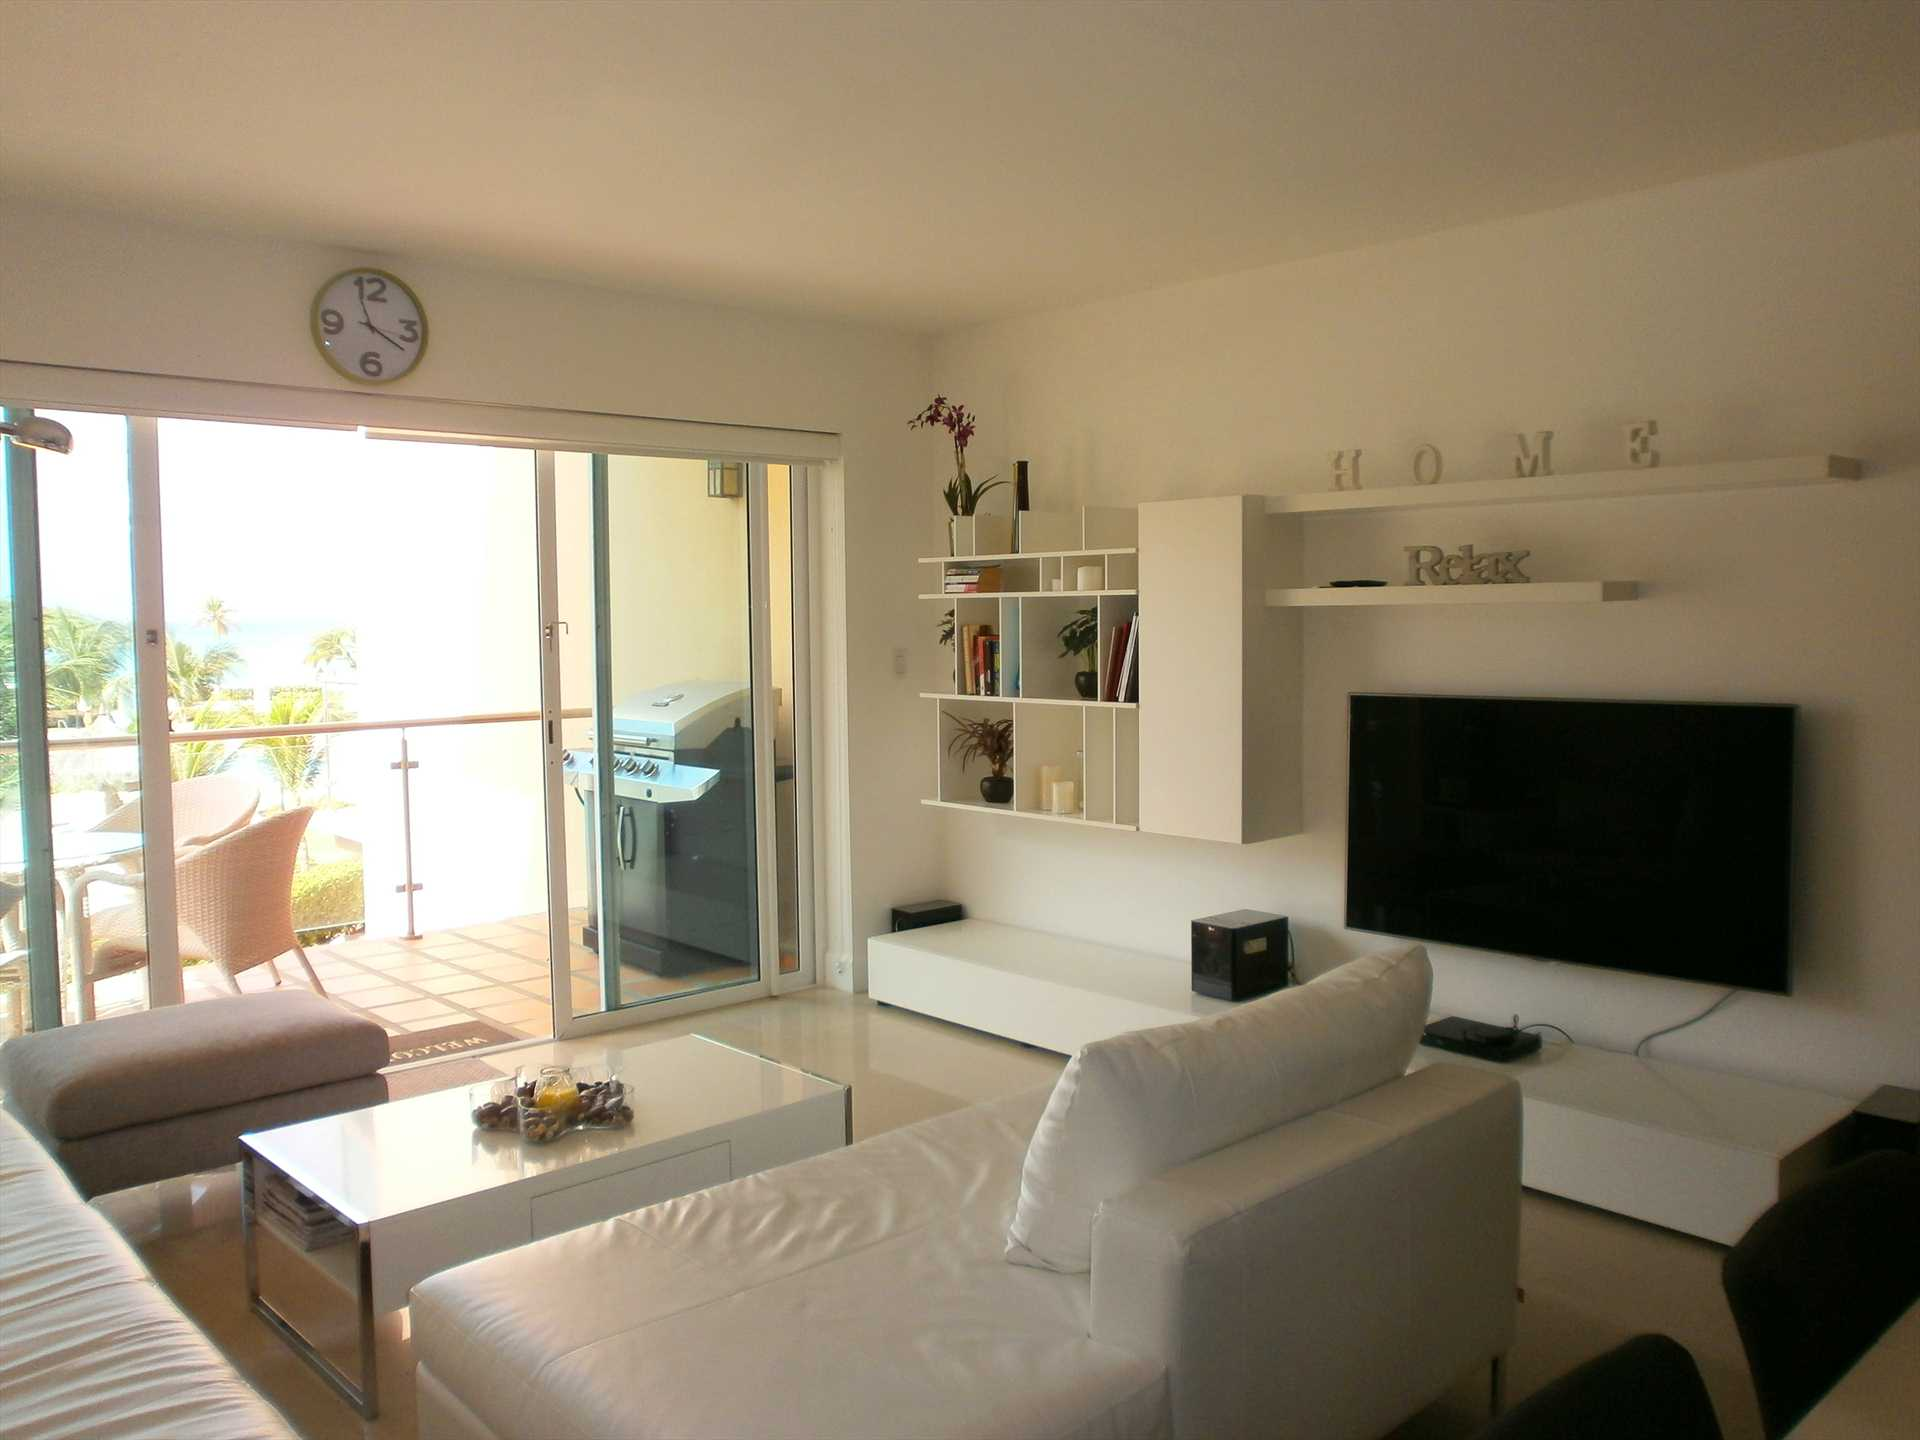 Easy access to balcony from living room